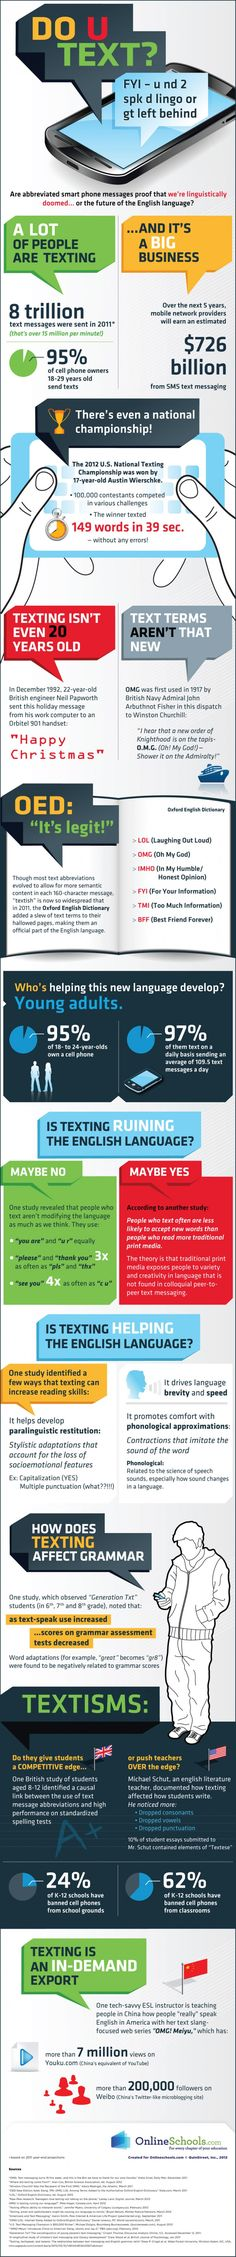 How TEXTING is changing English grammar